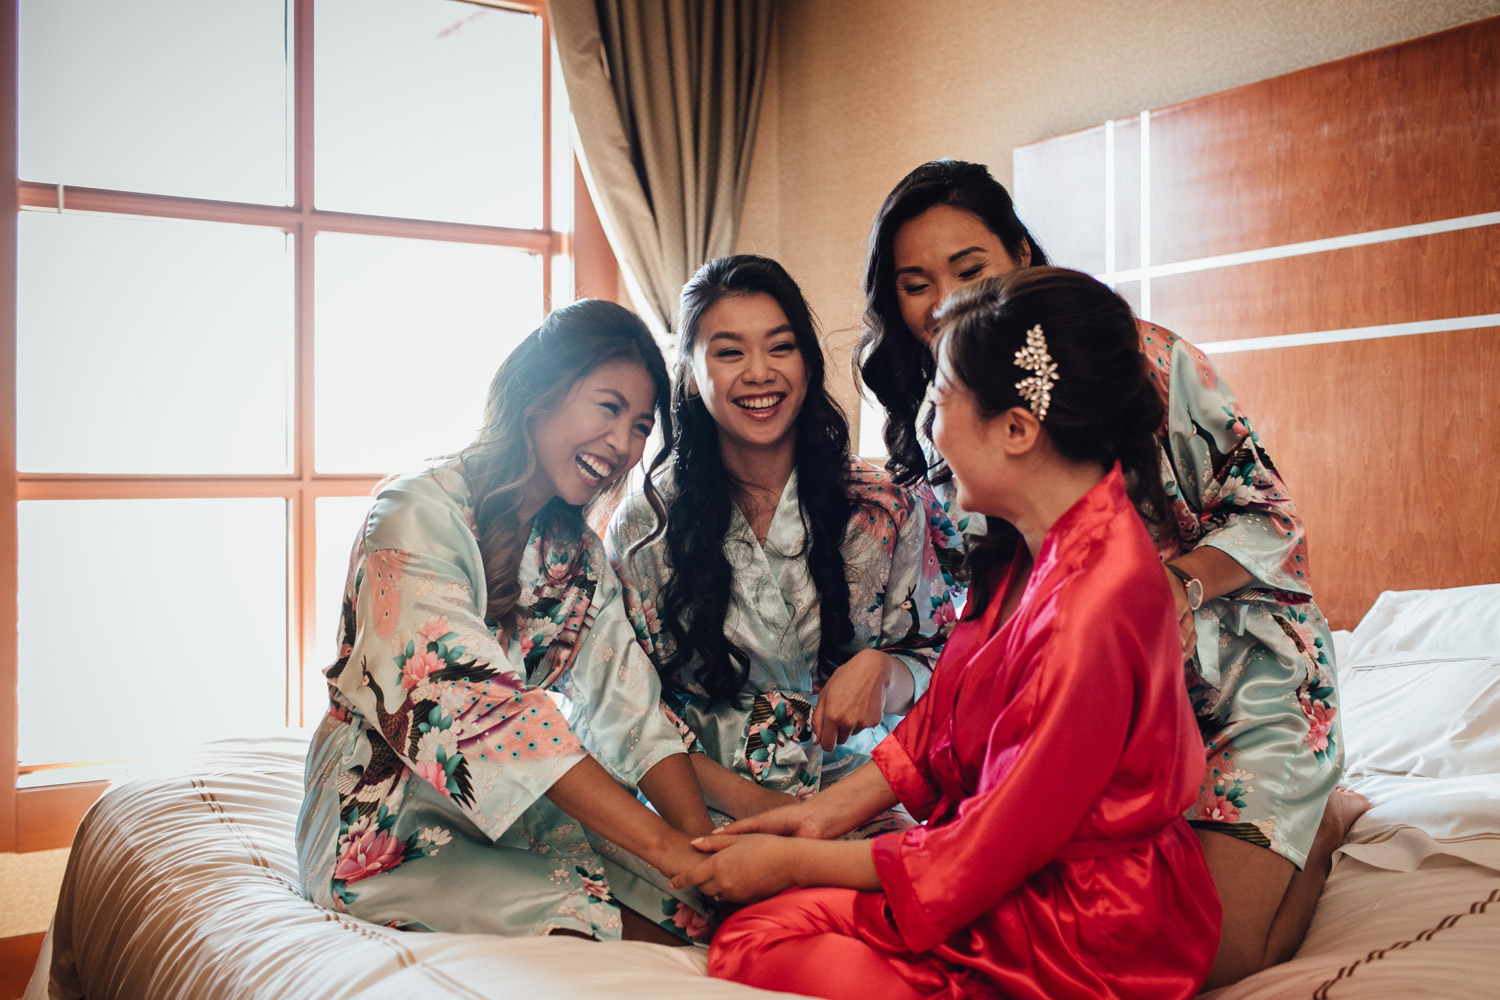 bride and bridesmaids river rock casino hotel bed candid wedding photography